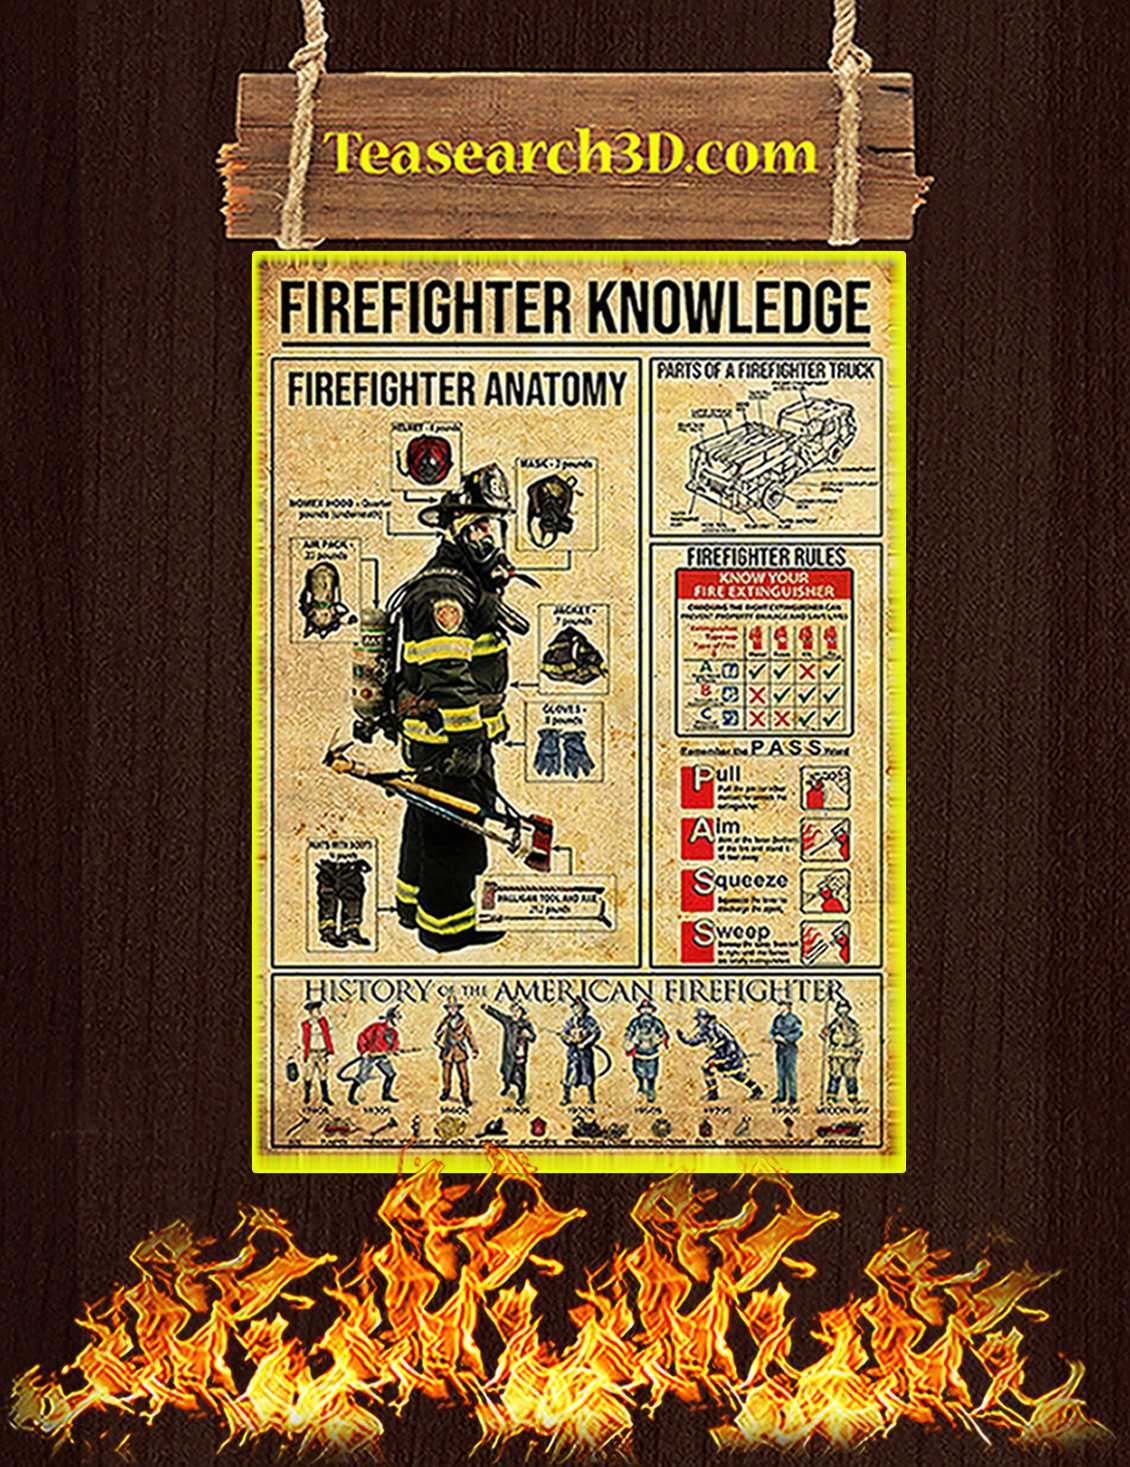 Firefighter knowledge poster A3